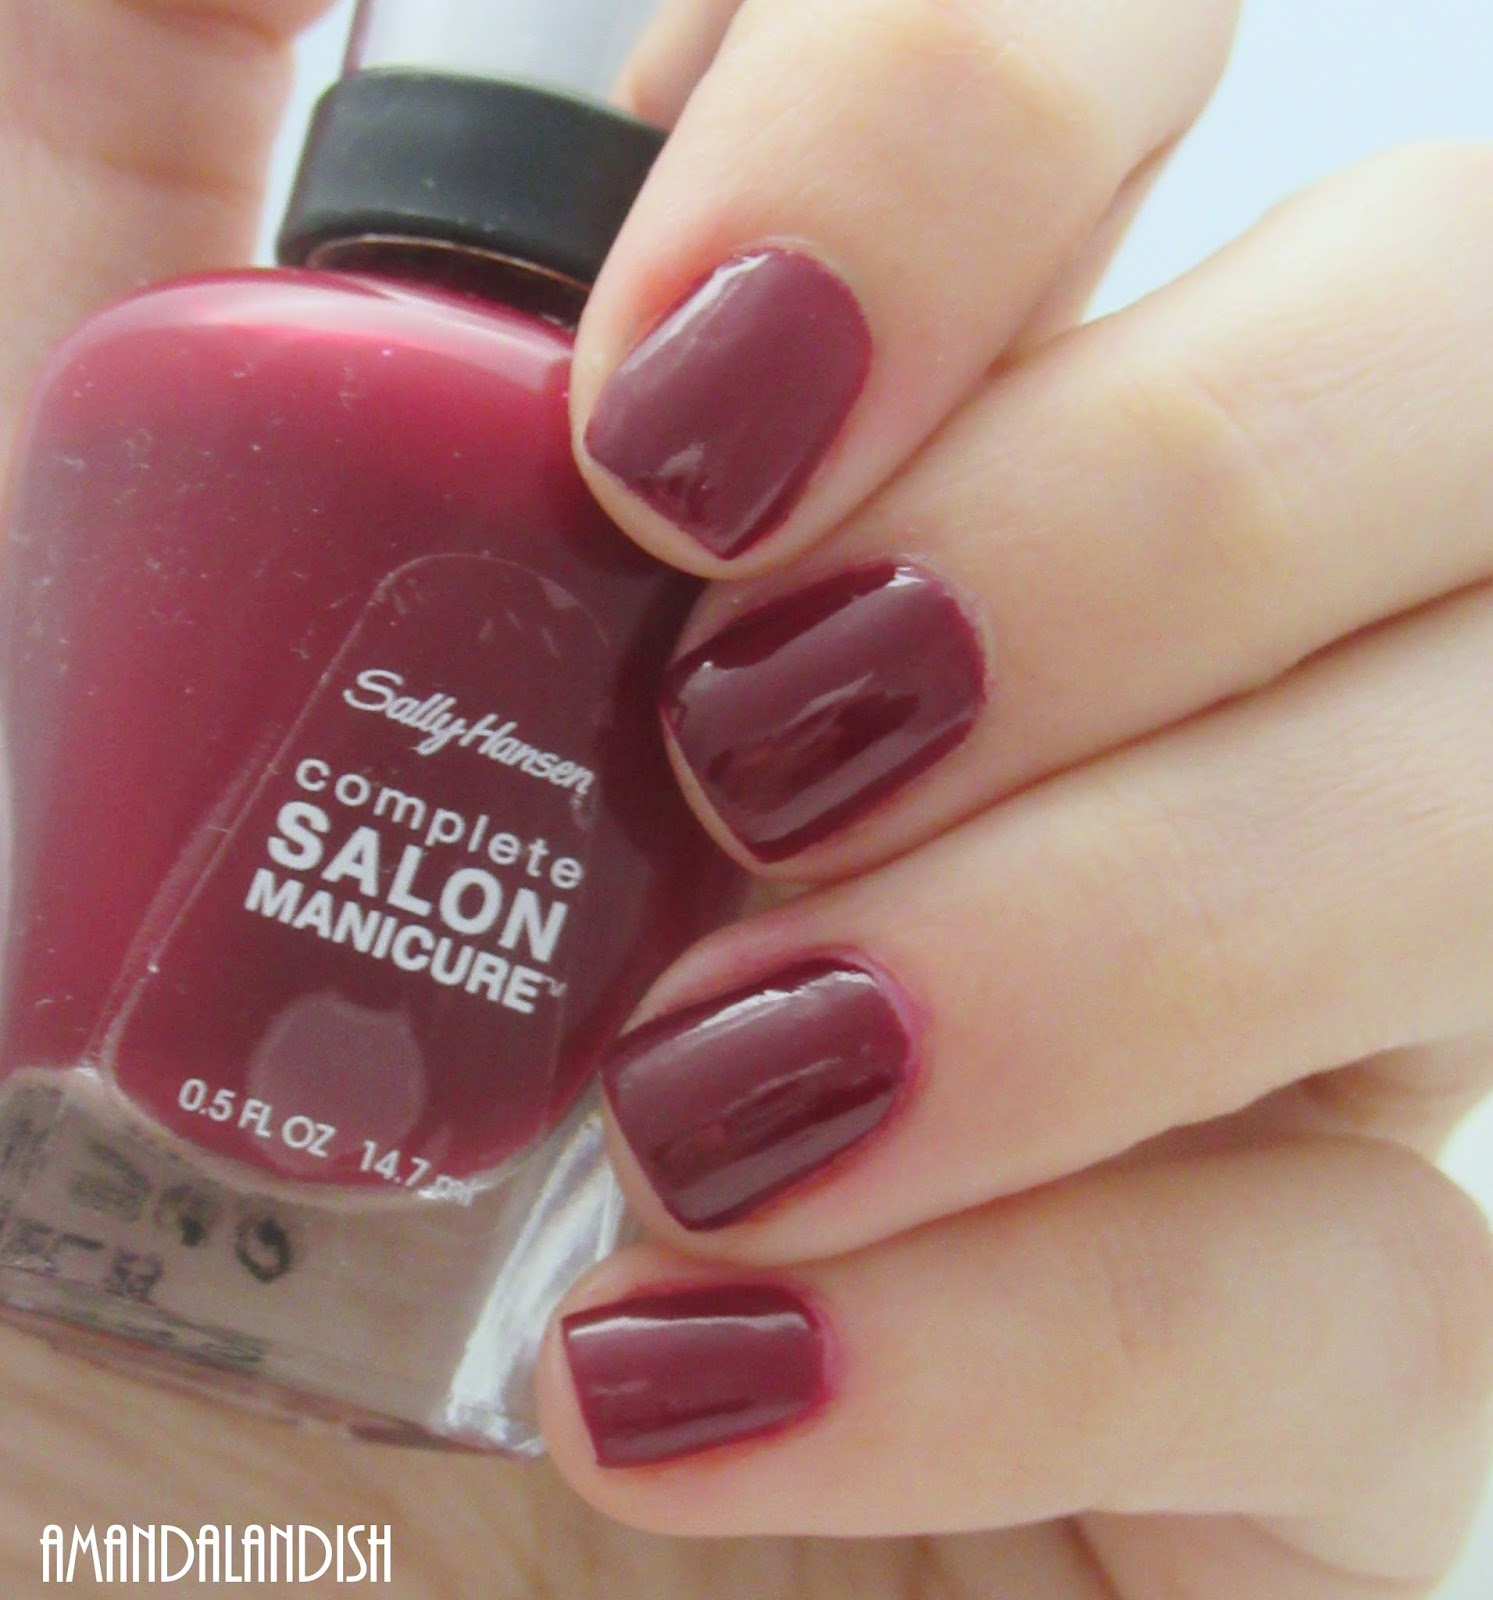 amandalandish: sally hansen new shades | winter 2016/2017